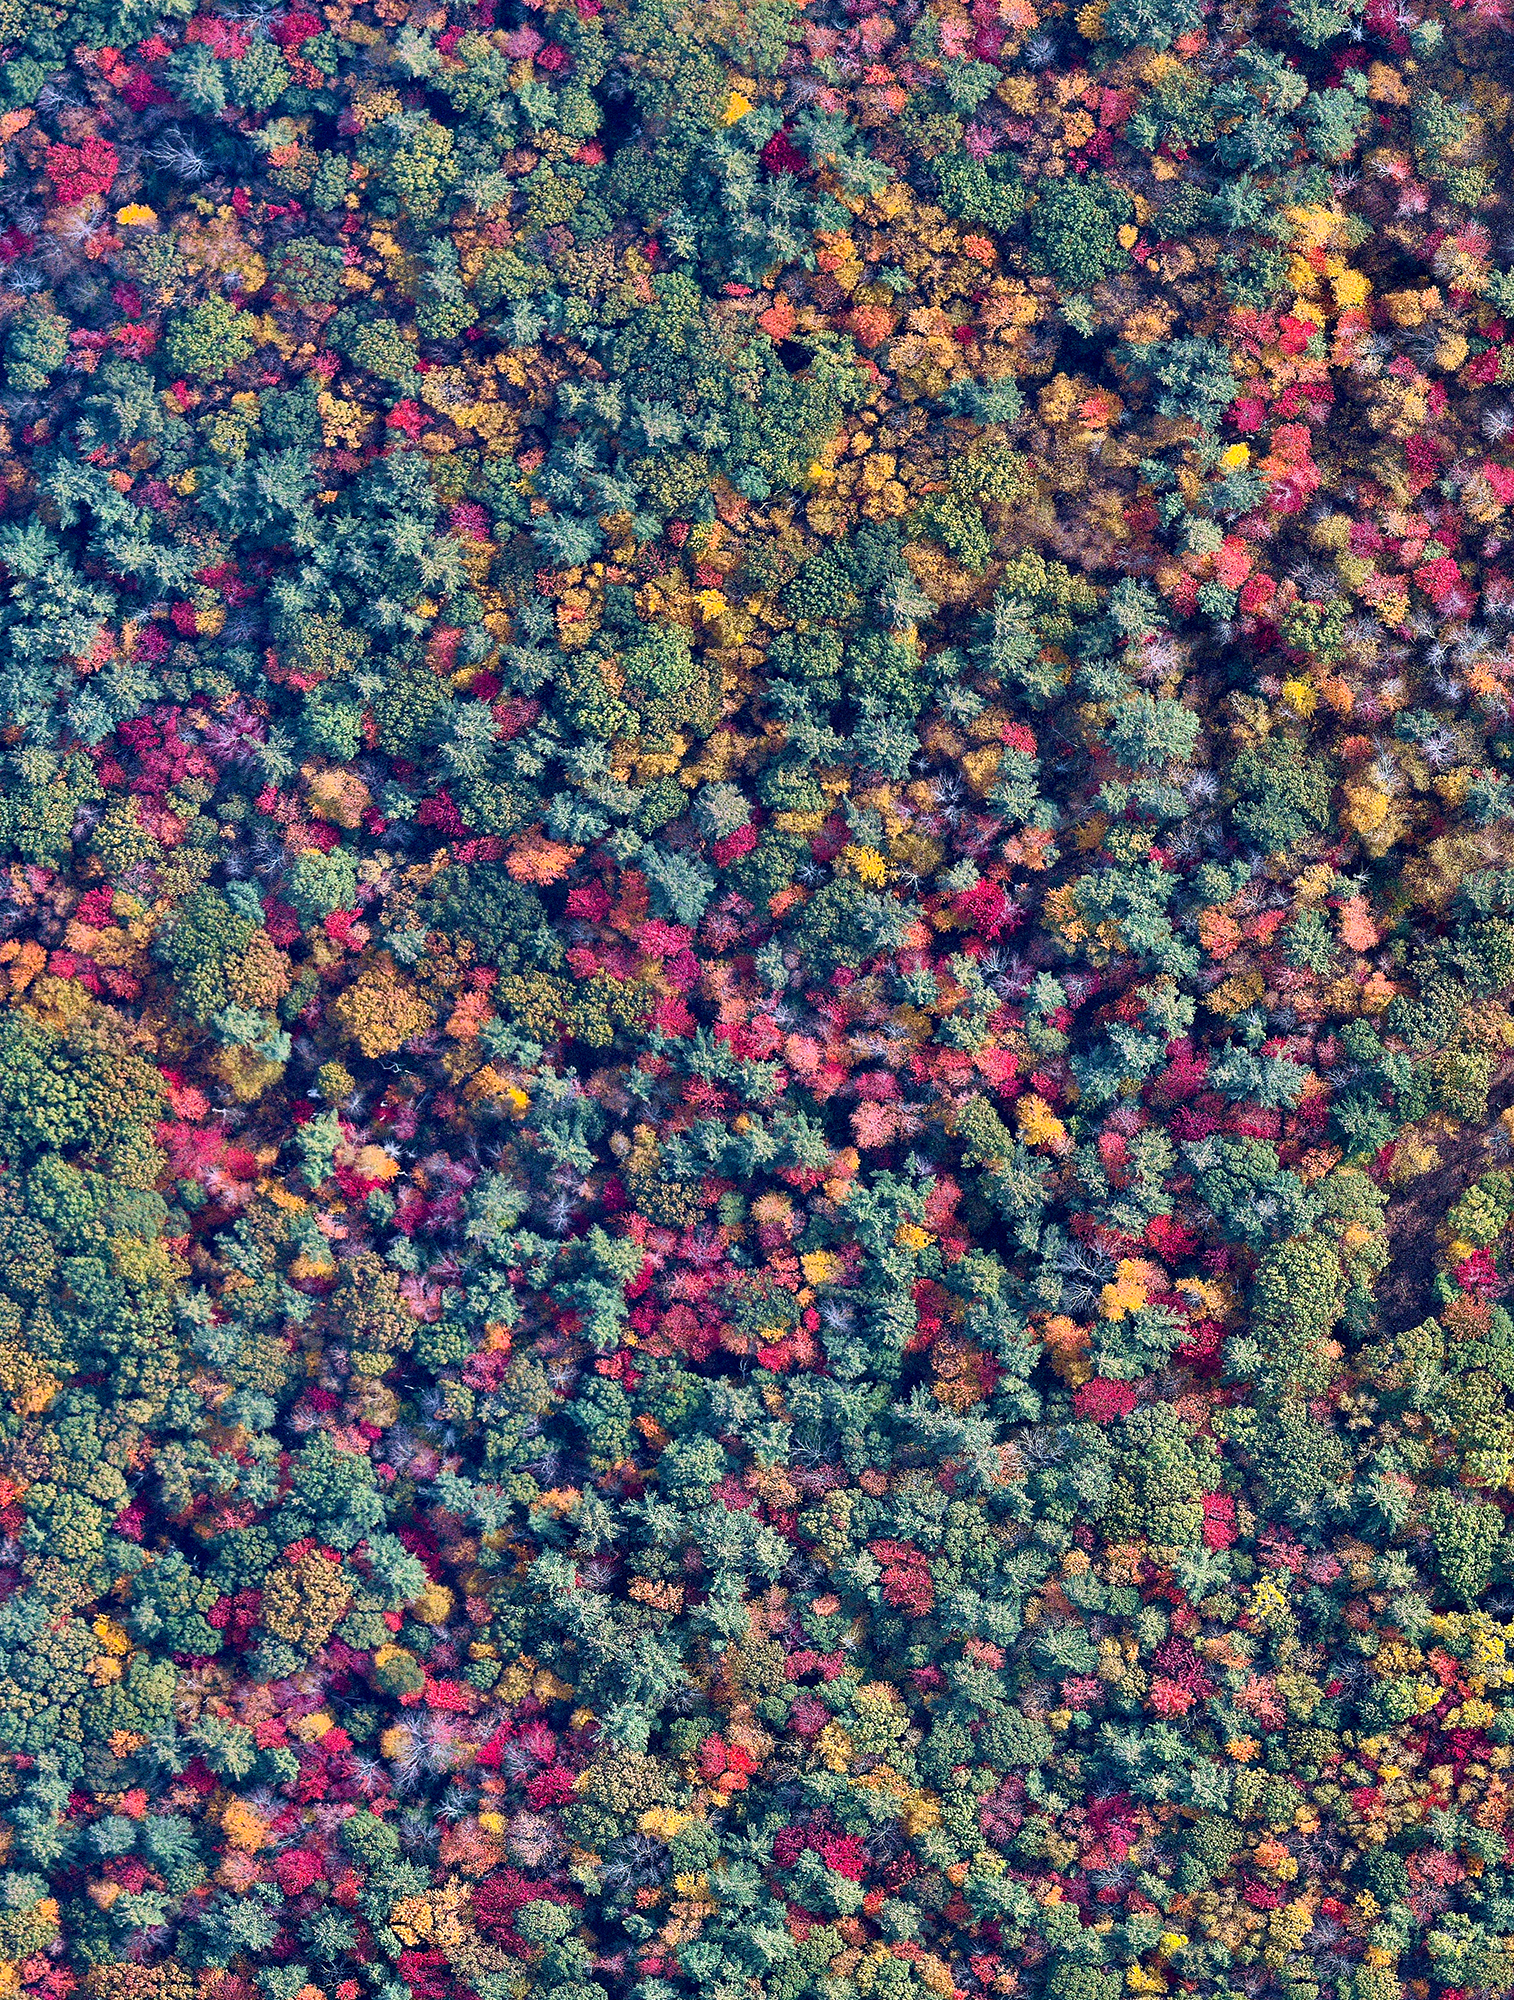 "Here's a final reminder that Overviews like this one are now 20% off in our Printshop! Just use the code ""HOLIDAY20"" to get your discount on any print order. Visit our  Printshop  to see what's available! This Overview captures an incredible blanket of tones in the trees of Bow, New Hampshire. With the arrival of colder temperatures, leaves begin to change their colors, creating this marvelous view from above.  43°07'39.5""N, 71°32'36.5""W  Source imagery: Nearmap"